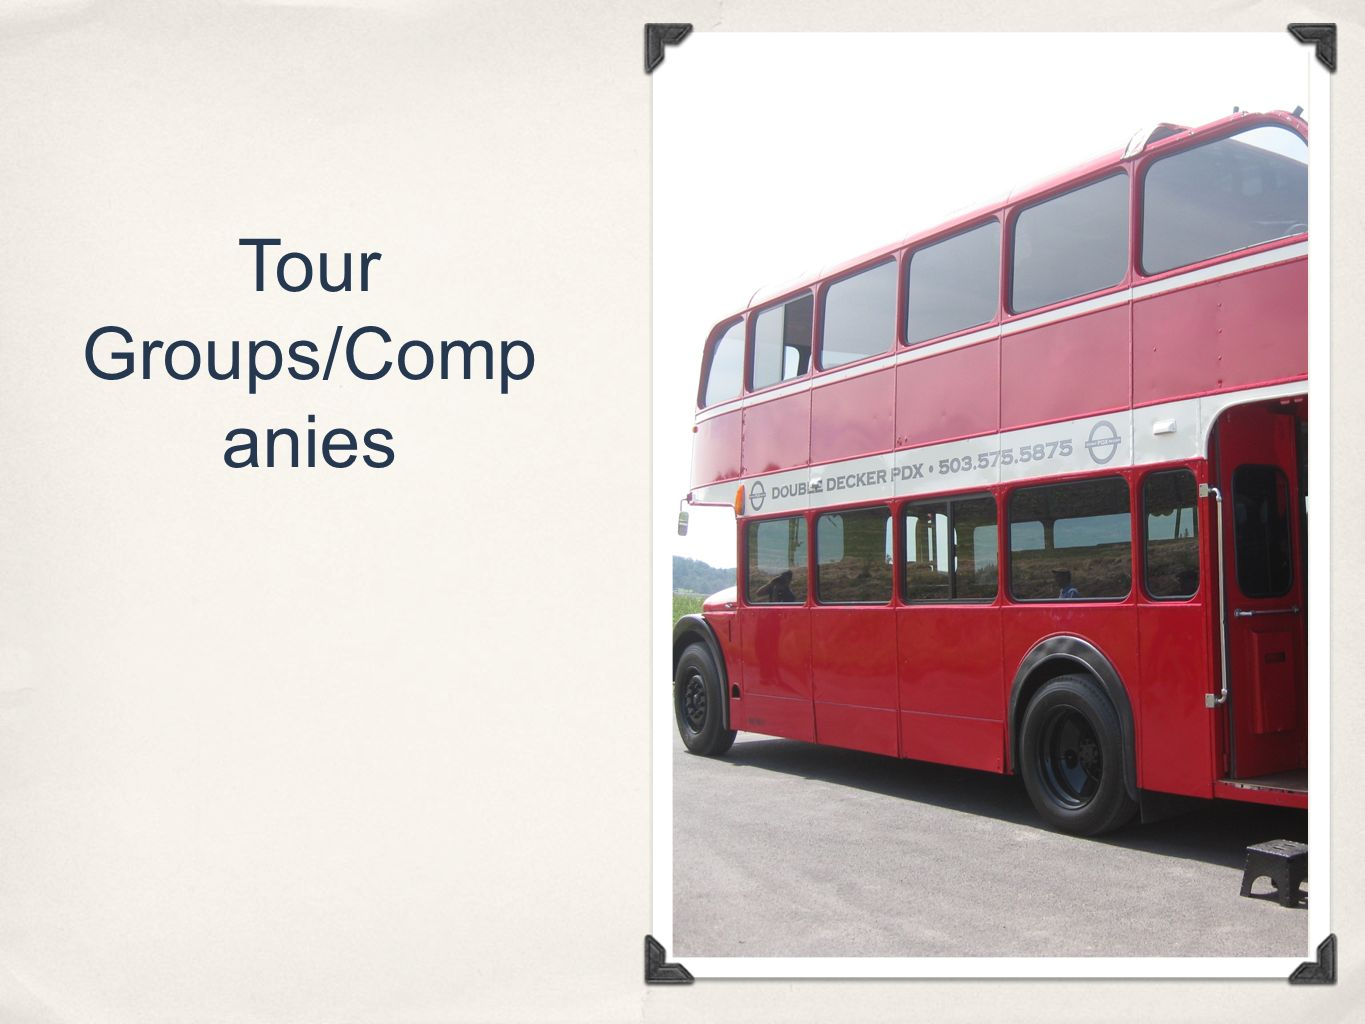 Tour Groups/Comp anies